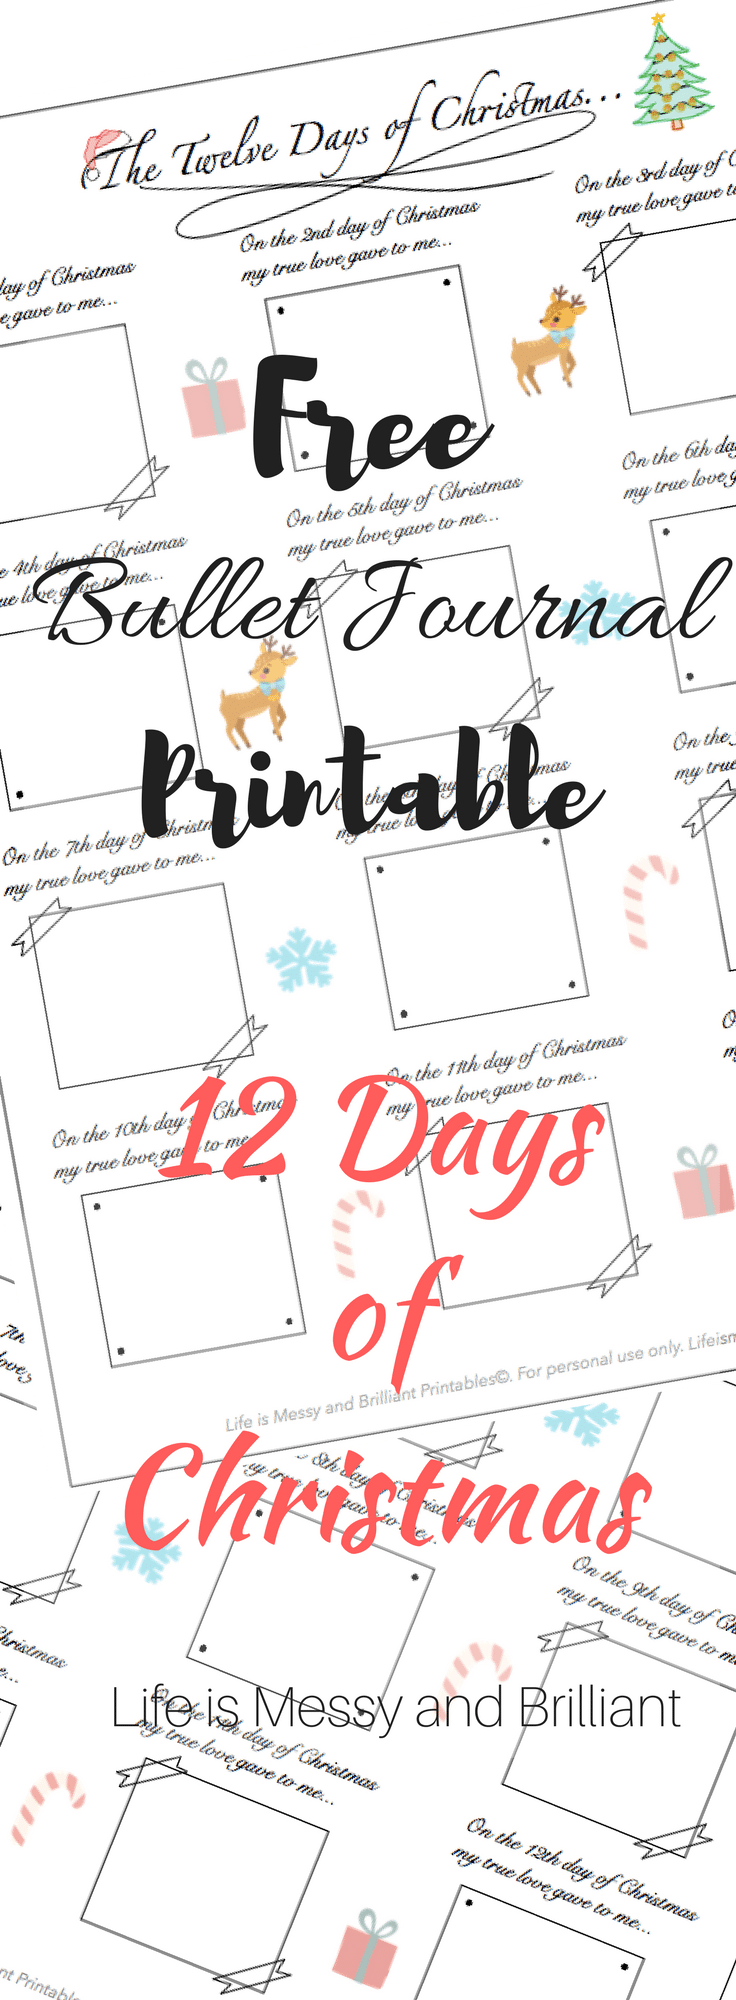 photo regarding 12 Days of Christmas Printable Templates identify Blog site Lifestyle is Messy and Amazing